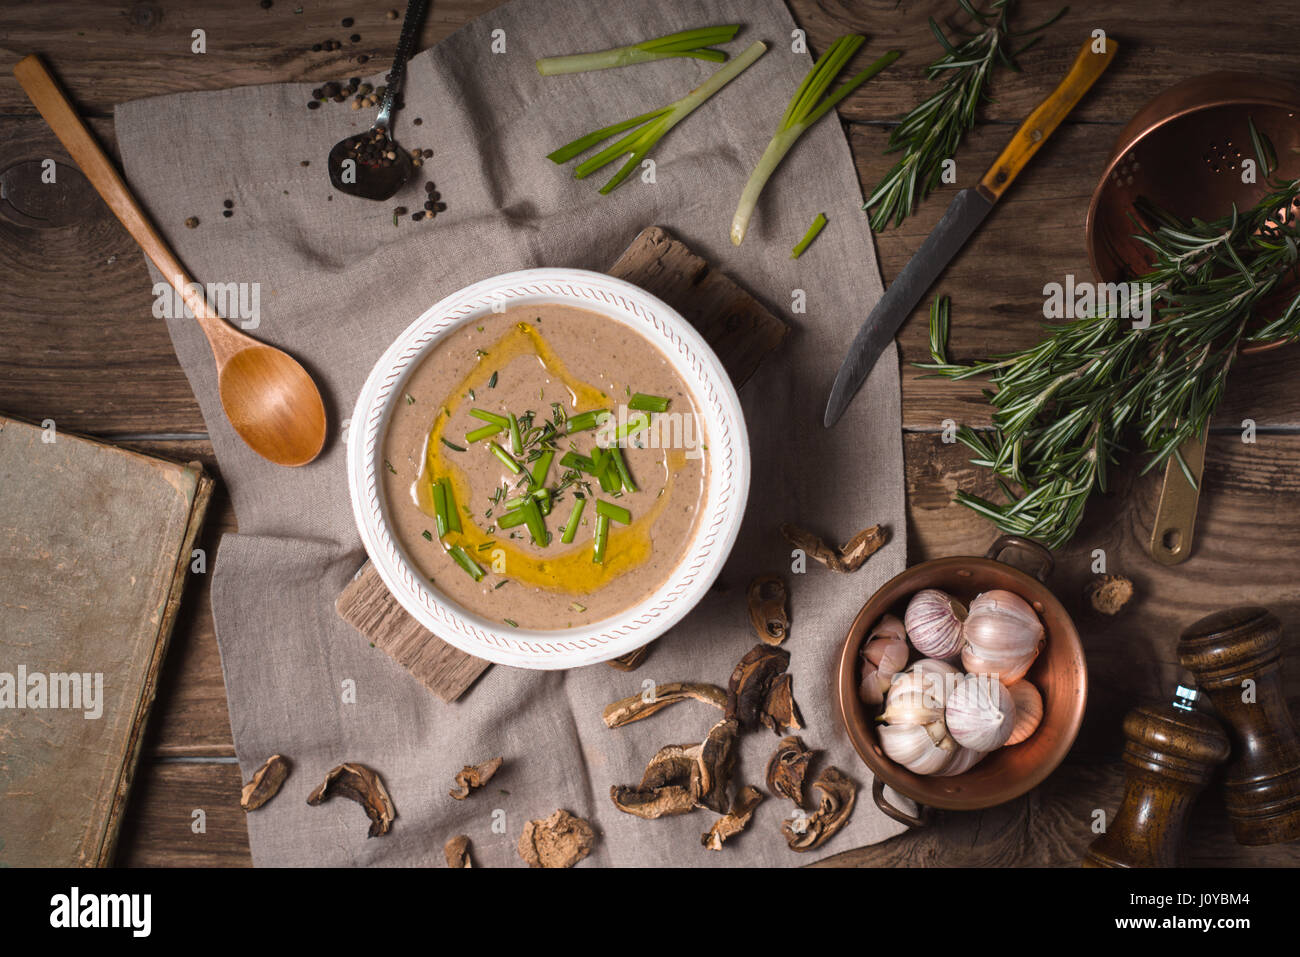 Mushroom cream soup on rustic background, top view - Stock Image